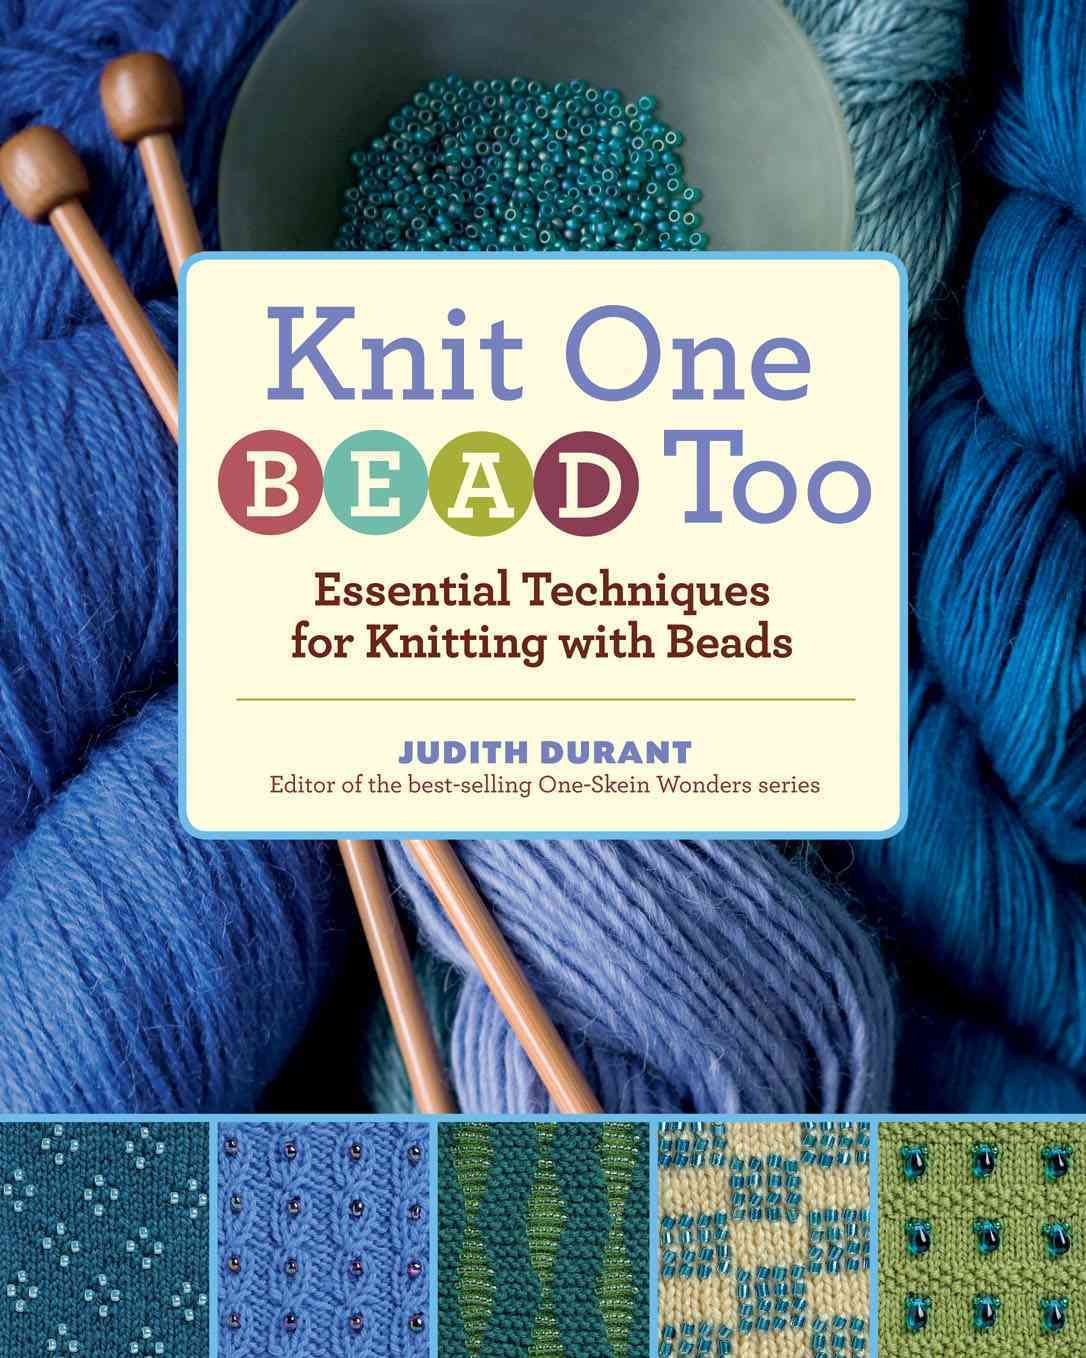 Knit one bead too essential techniques for knitting with beads knit one bead too essential techniques for knitting with beads bankloansurffo Gallery